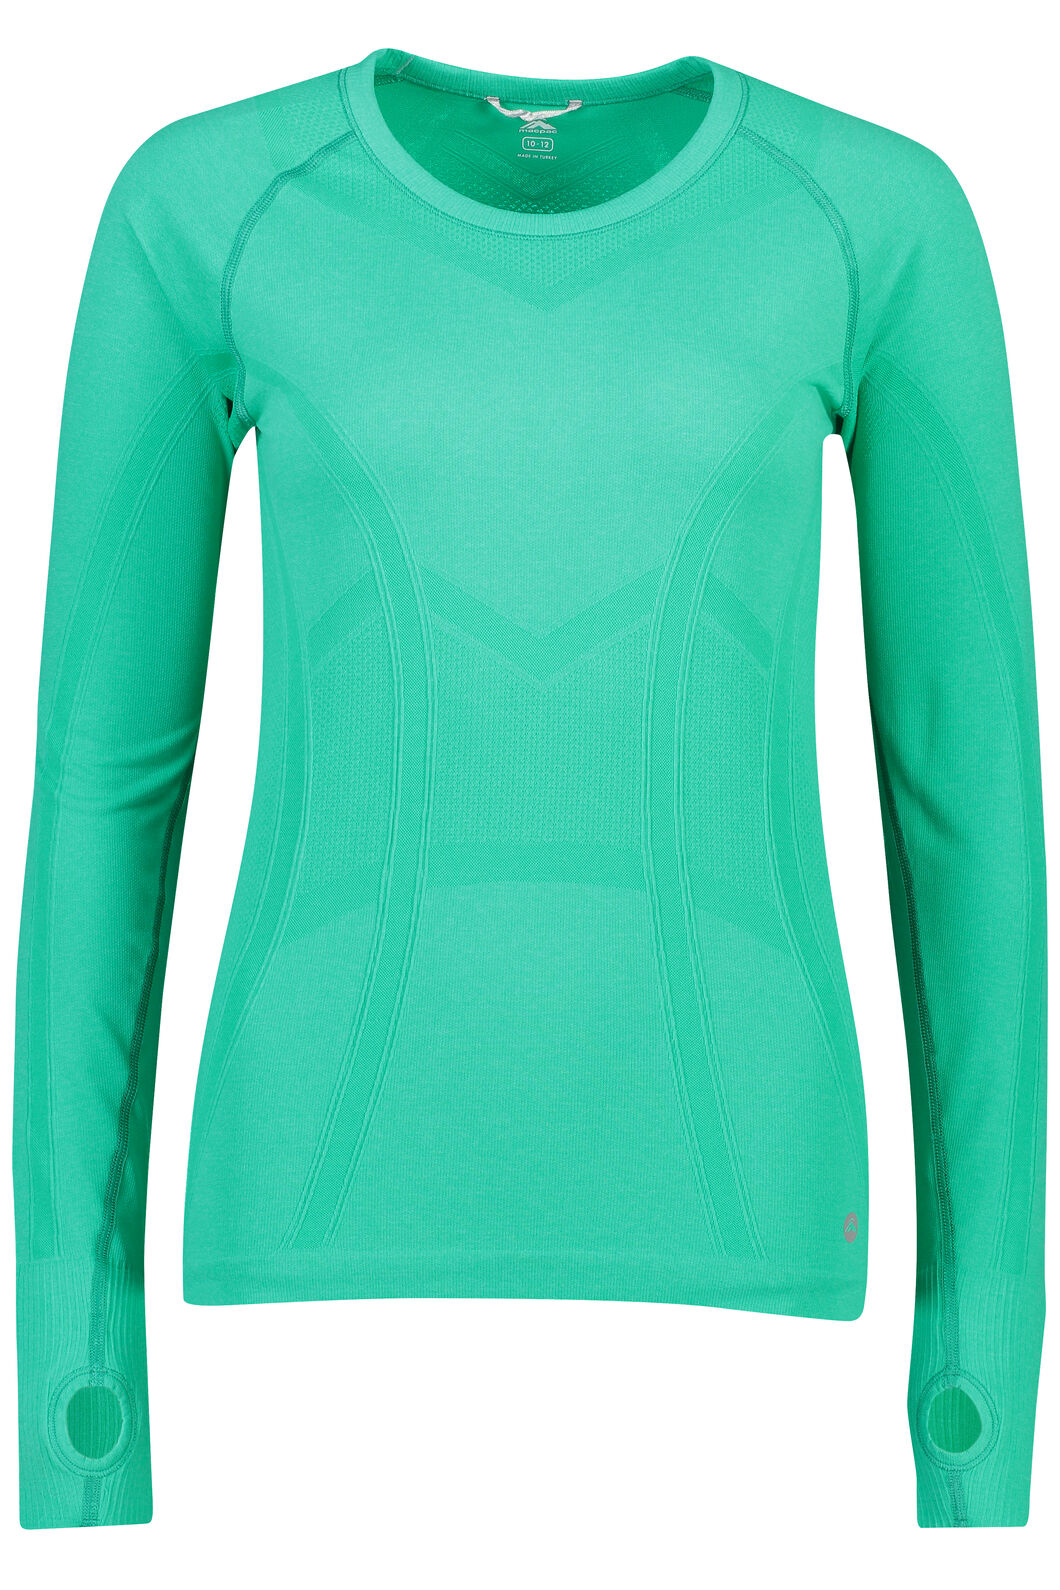 Macpac Limitless Long Sleeve Tee - Women's, Deep Green, hi-res